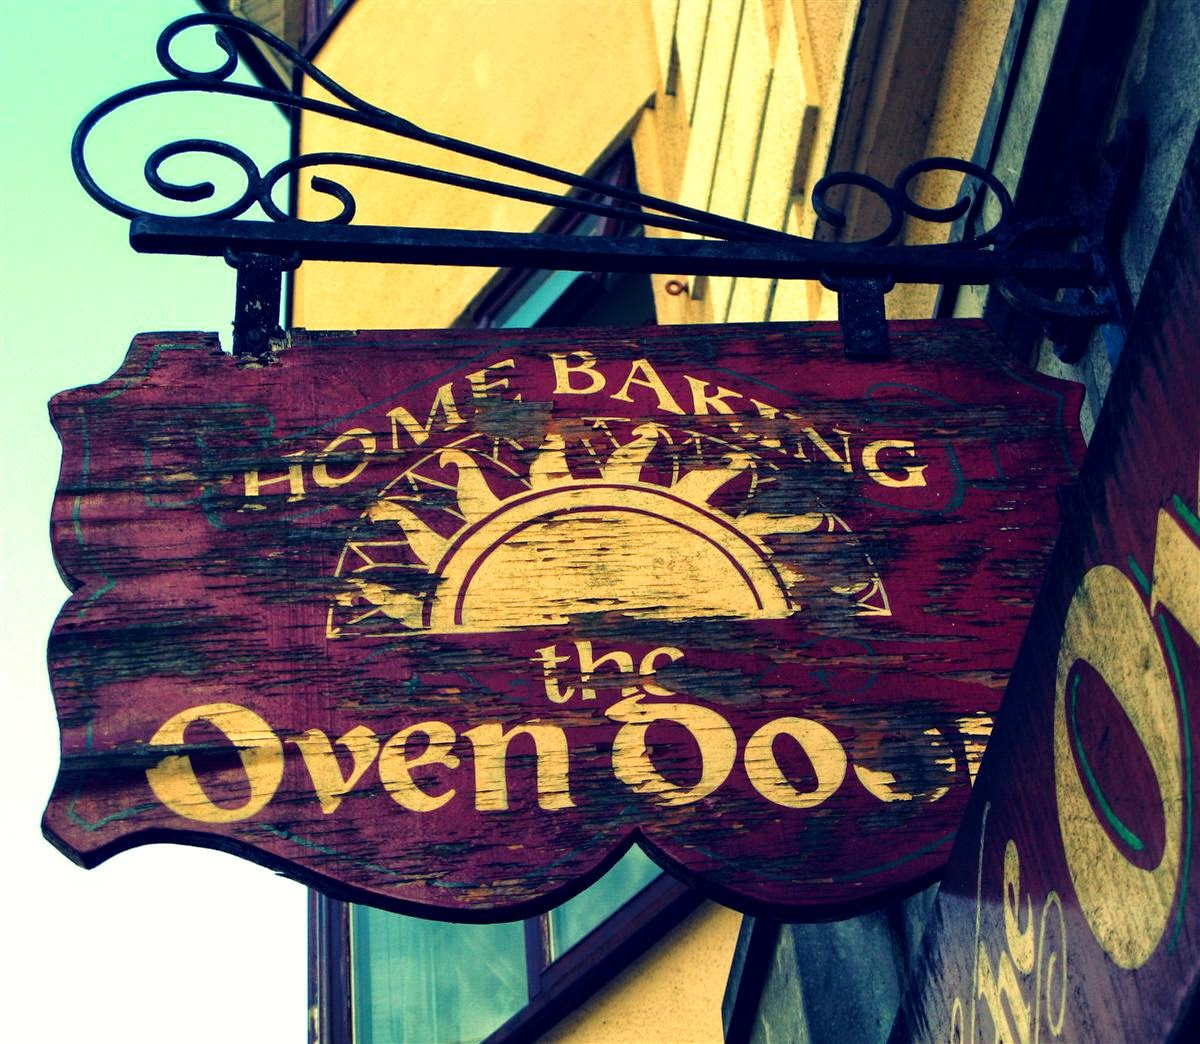 shop sign, Galway city